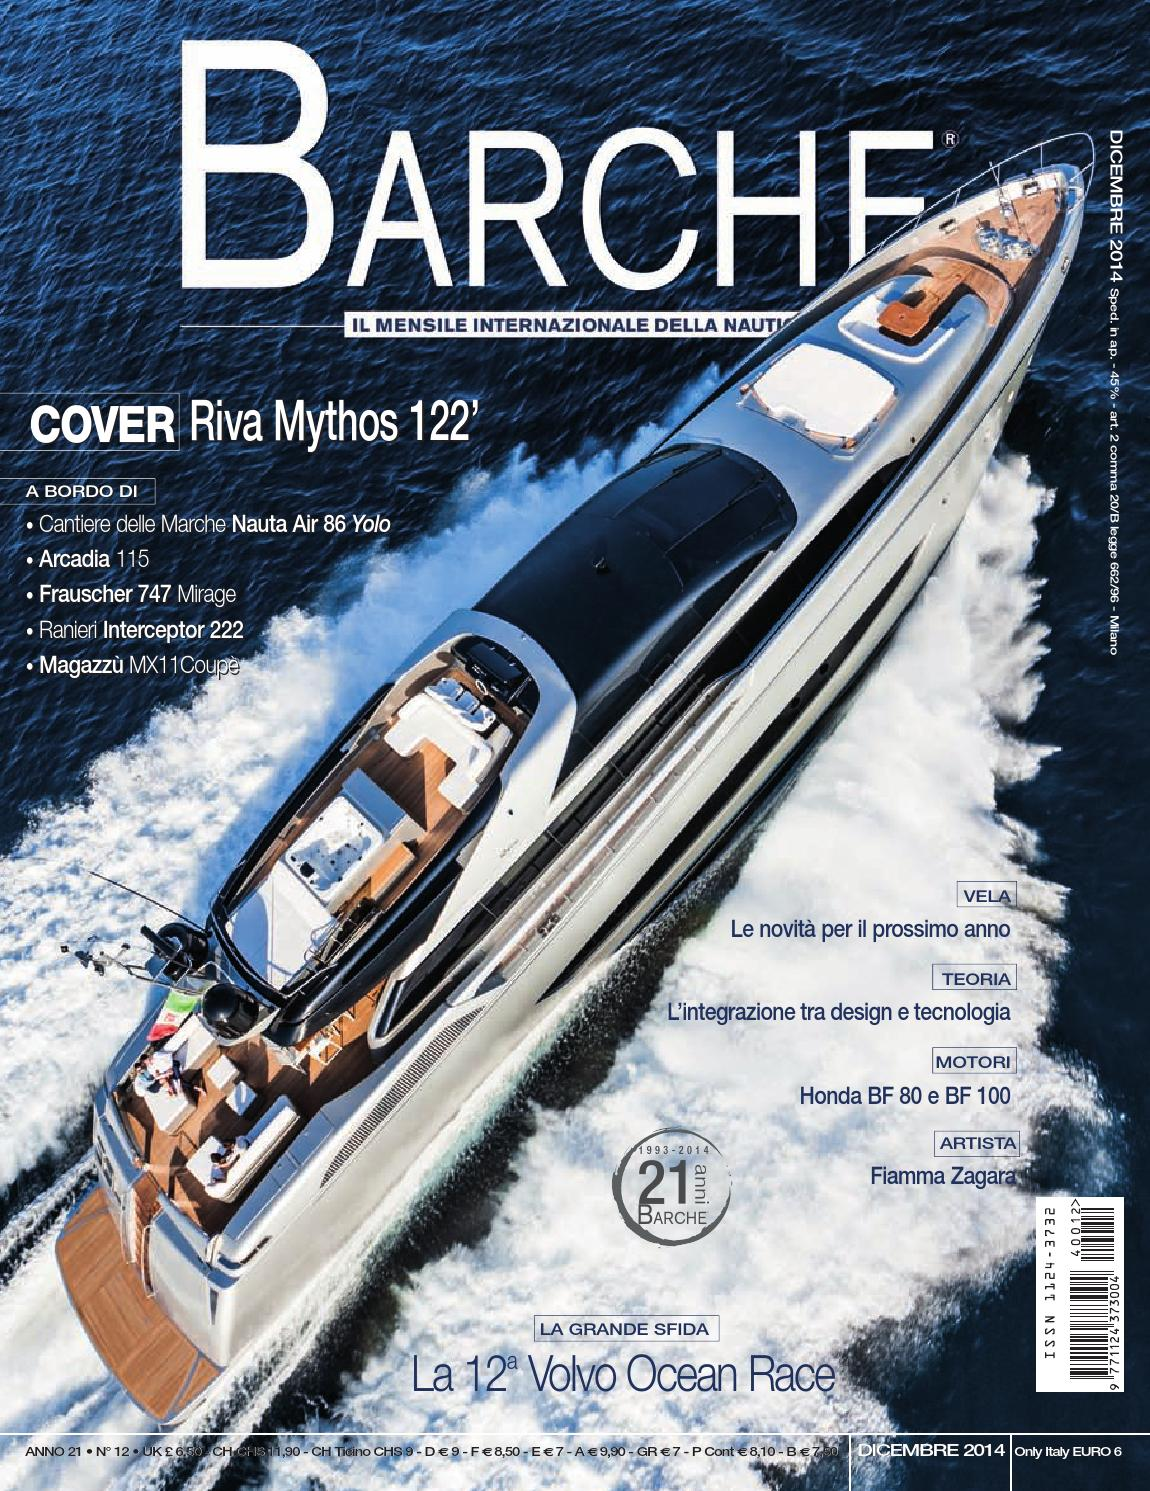 BARCHE DECEMBER 2014 by INTERNATIONAL SEA PRESS SRL - BARCHE - issuu 78fdec4a1b8